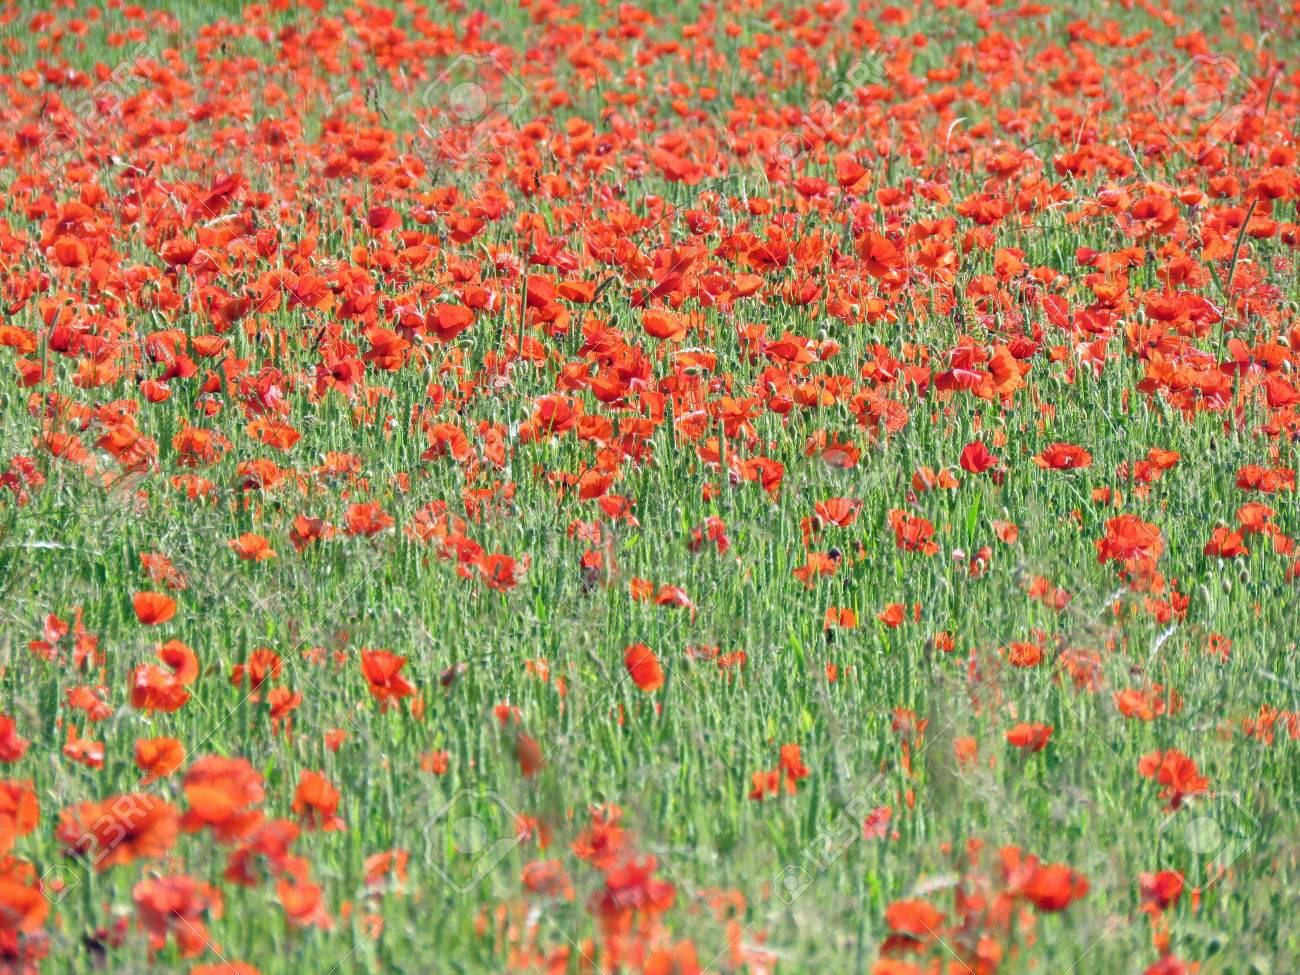 A meadow full of poppies and grasses in rural English countryside Standard-Bild - 81777585